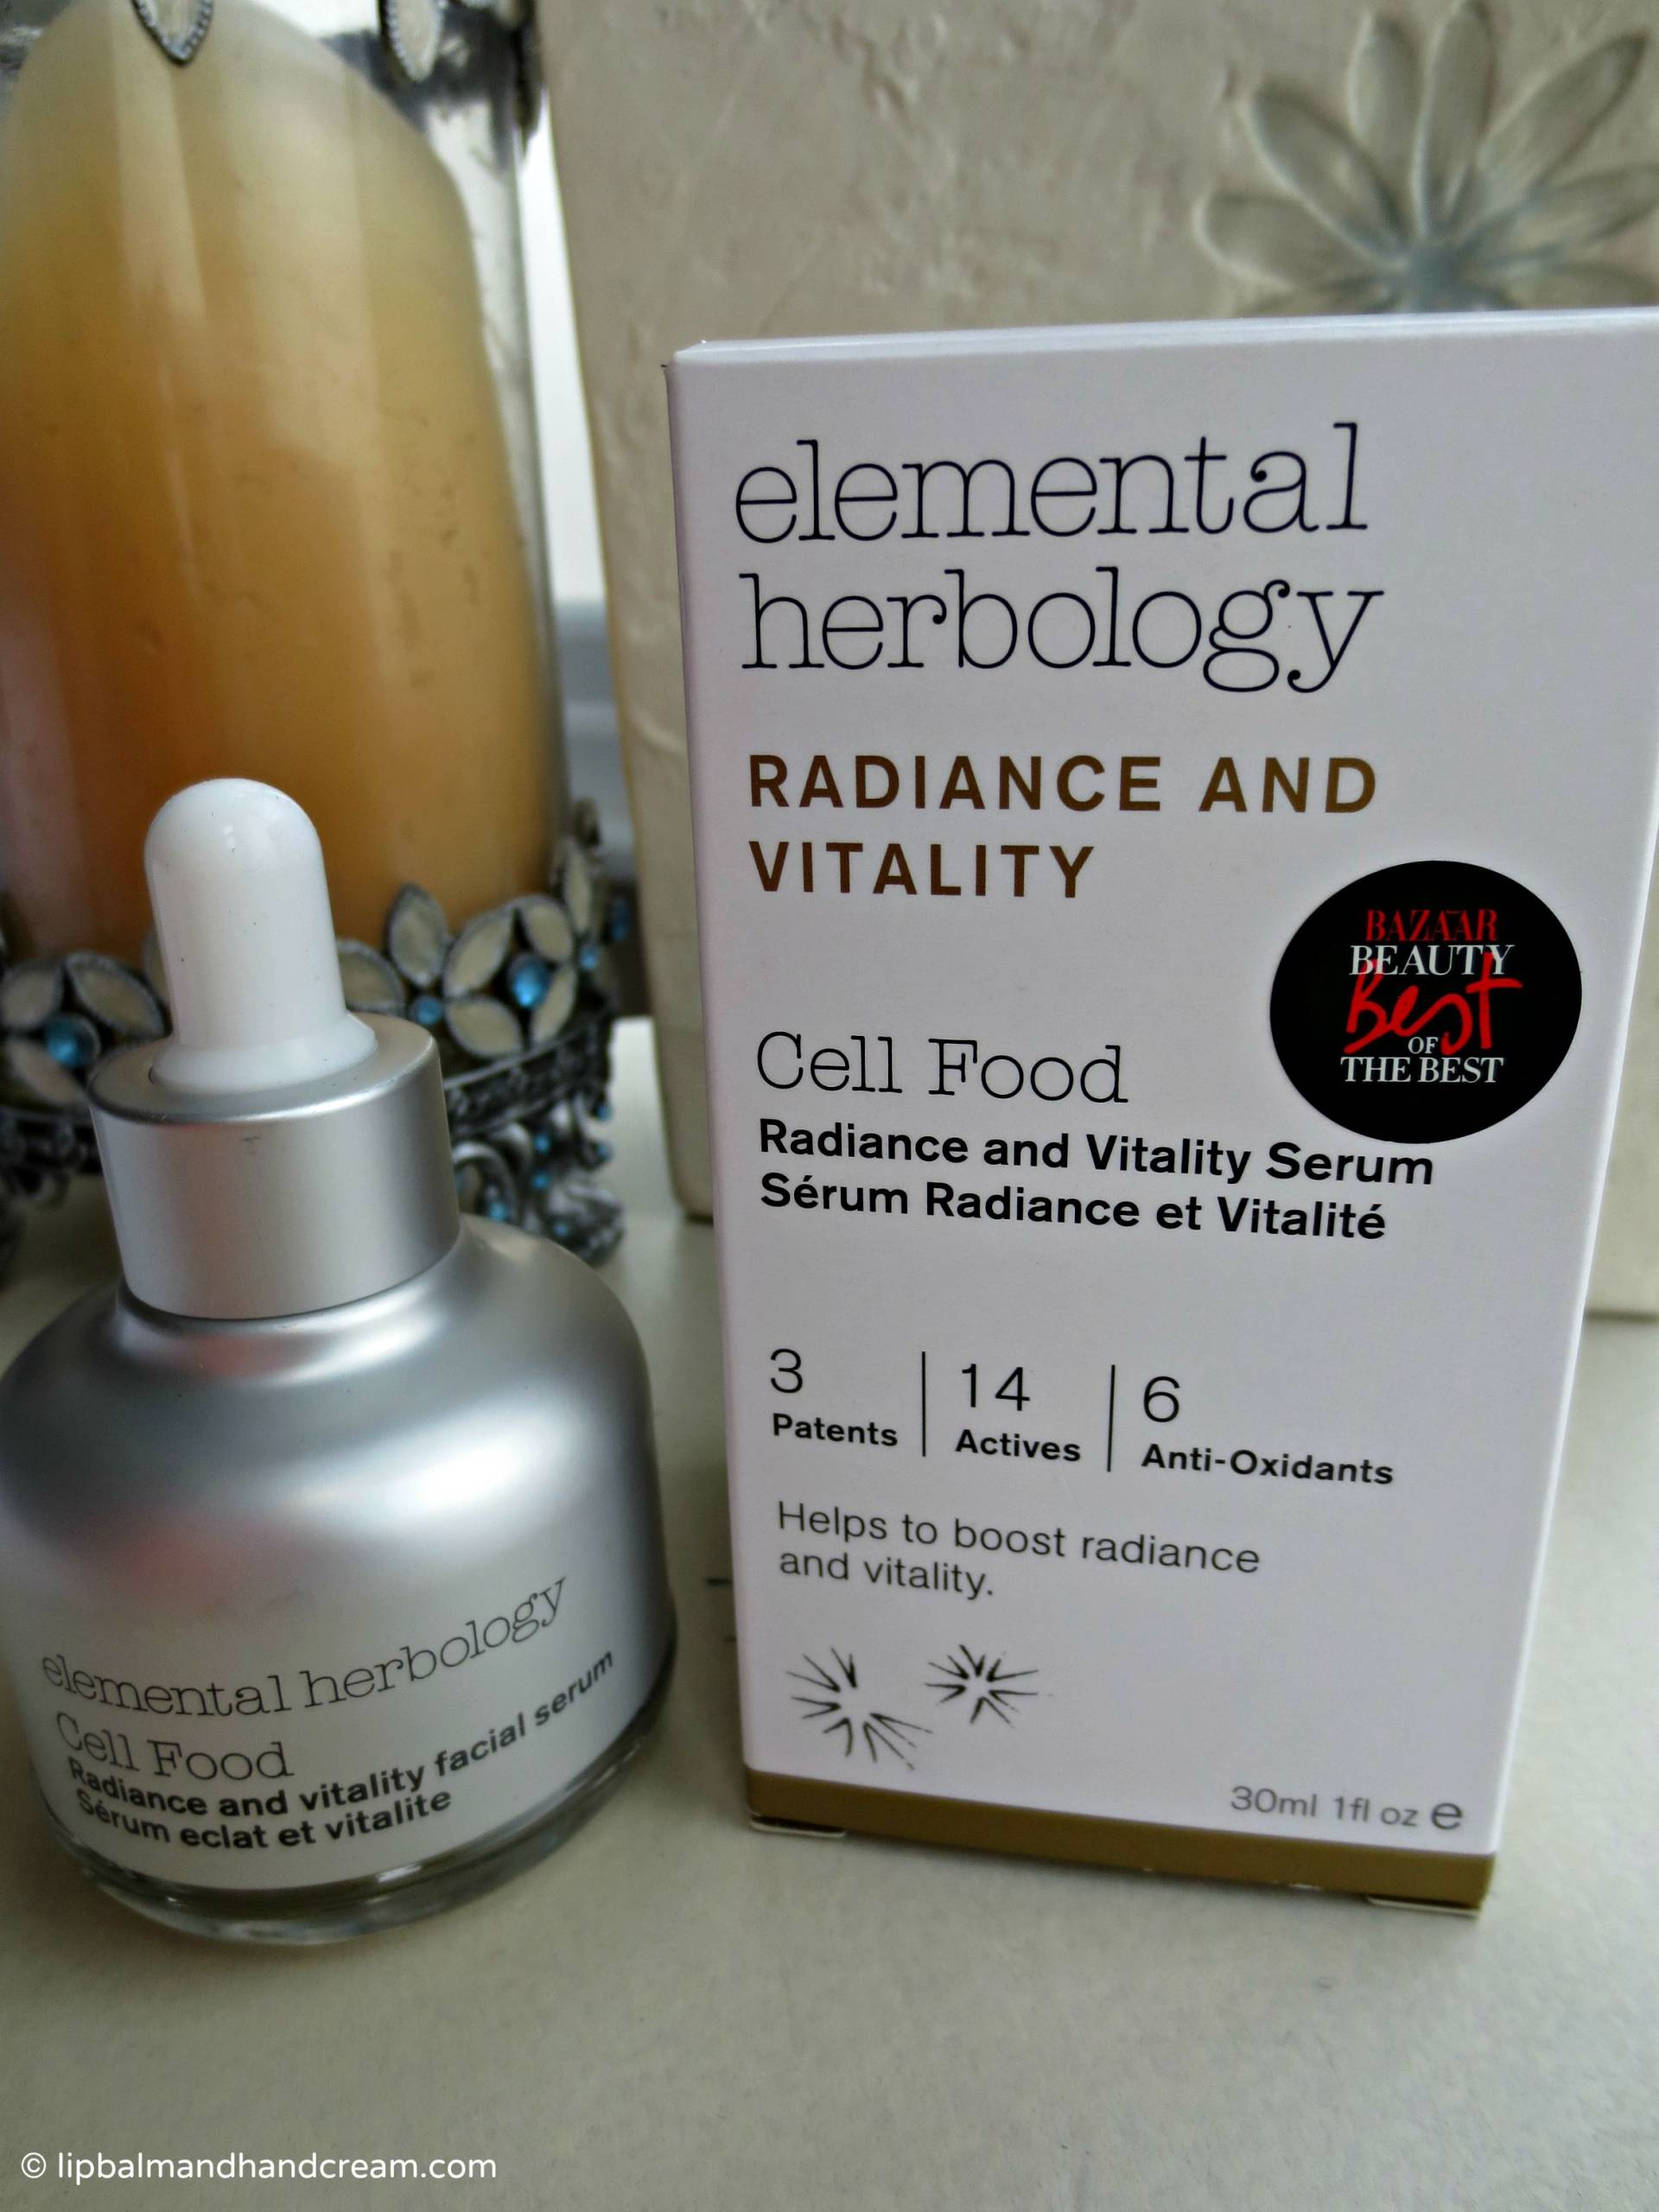 elemental herbology cell food - radiance & vitality serum